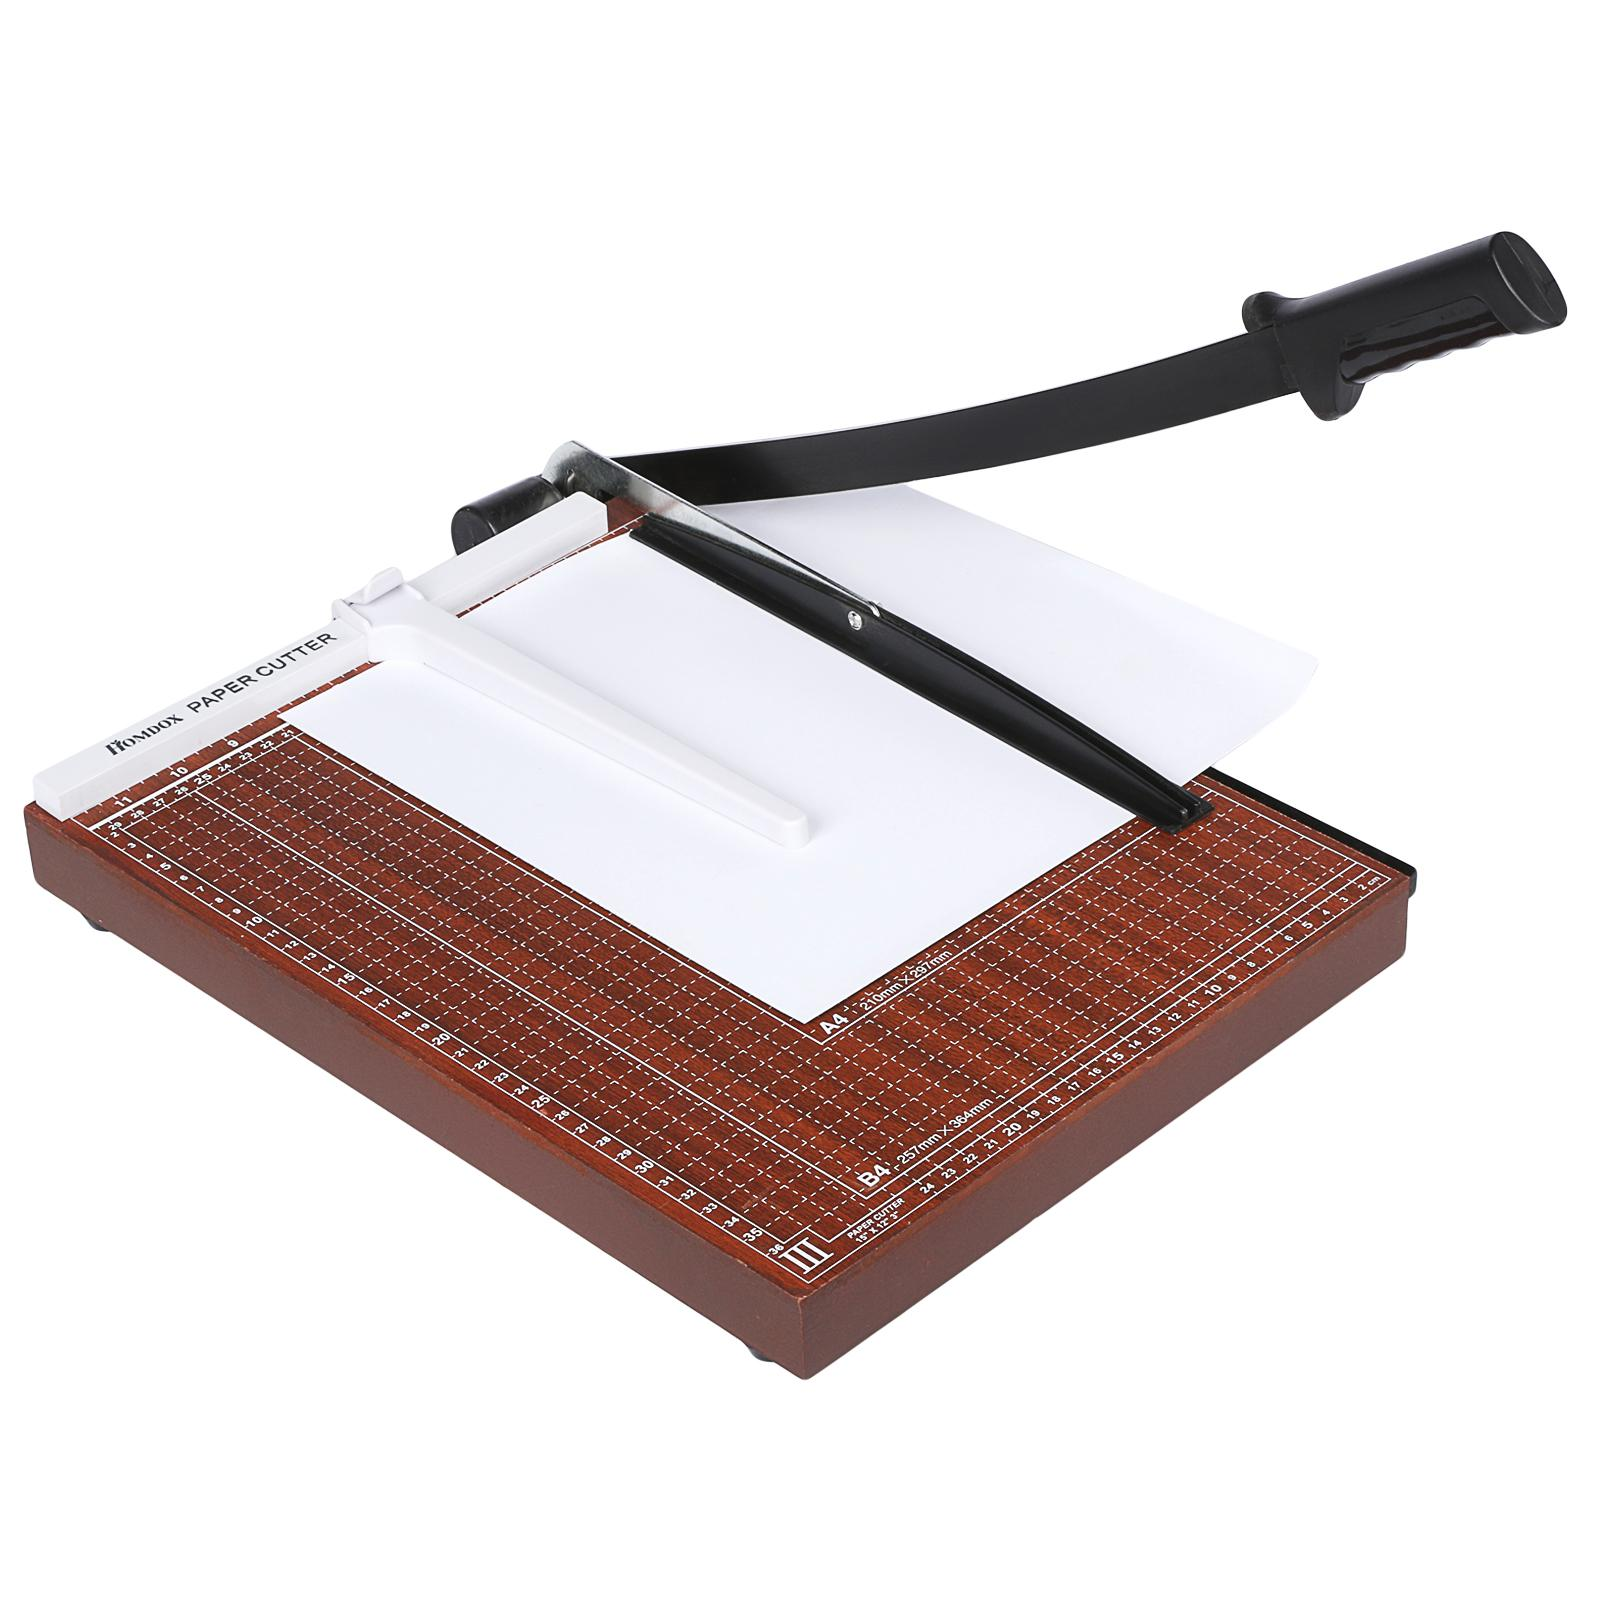 CYBST 12 Inch Paper Trimmer Paper Cutter A3 A4 B5 A5 B6 B7 Cut Length 12 SHeets Capacity Office School Home... by